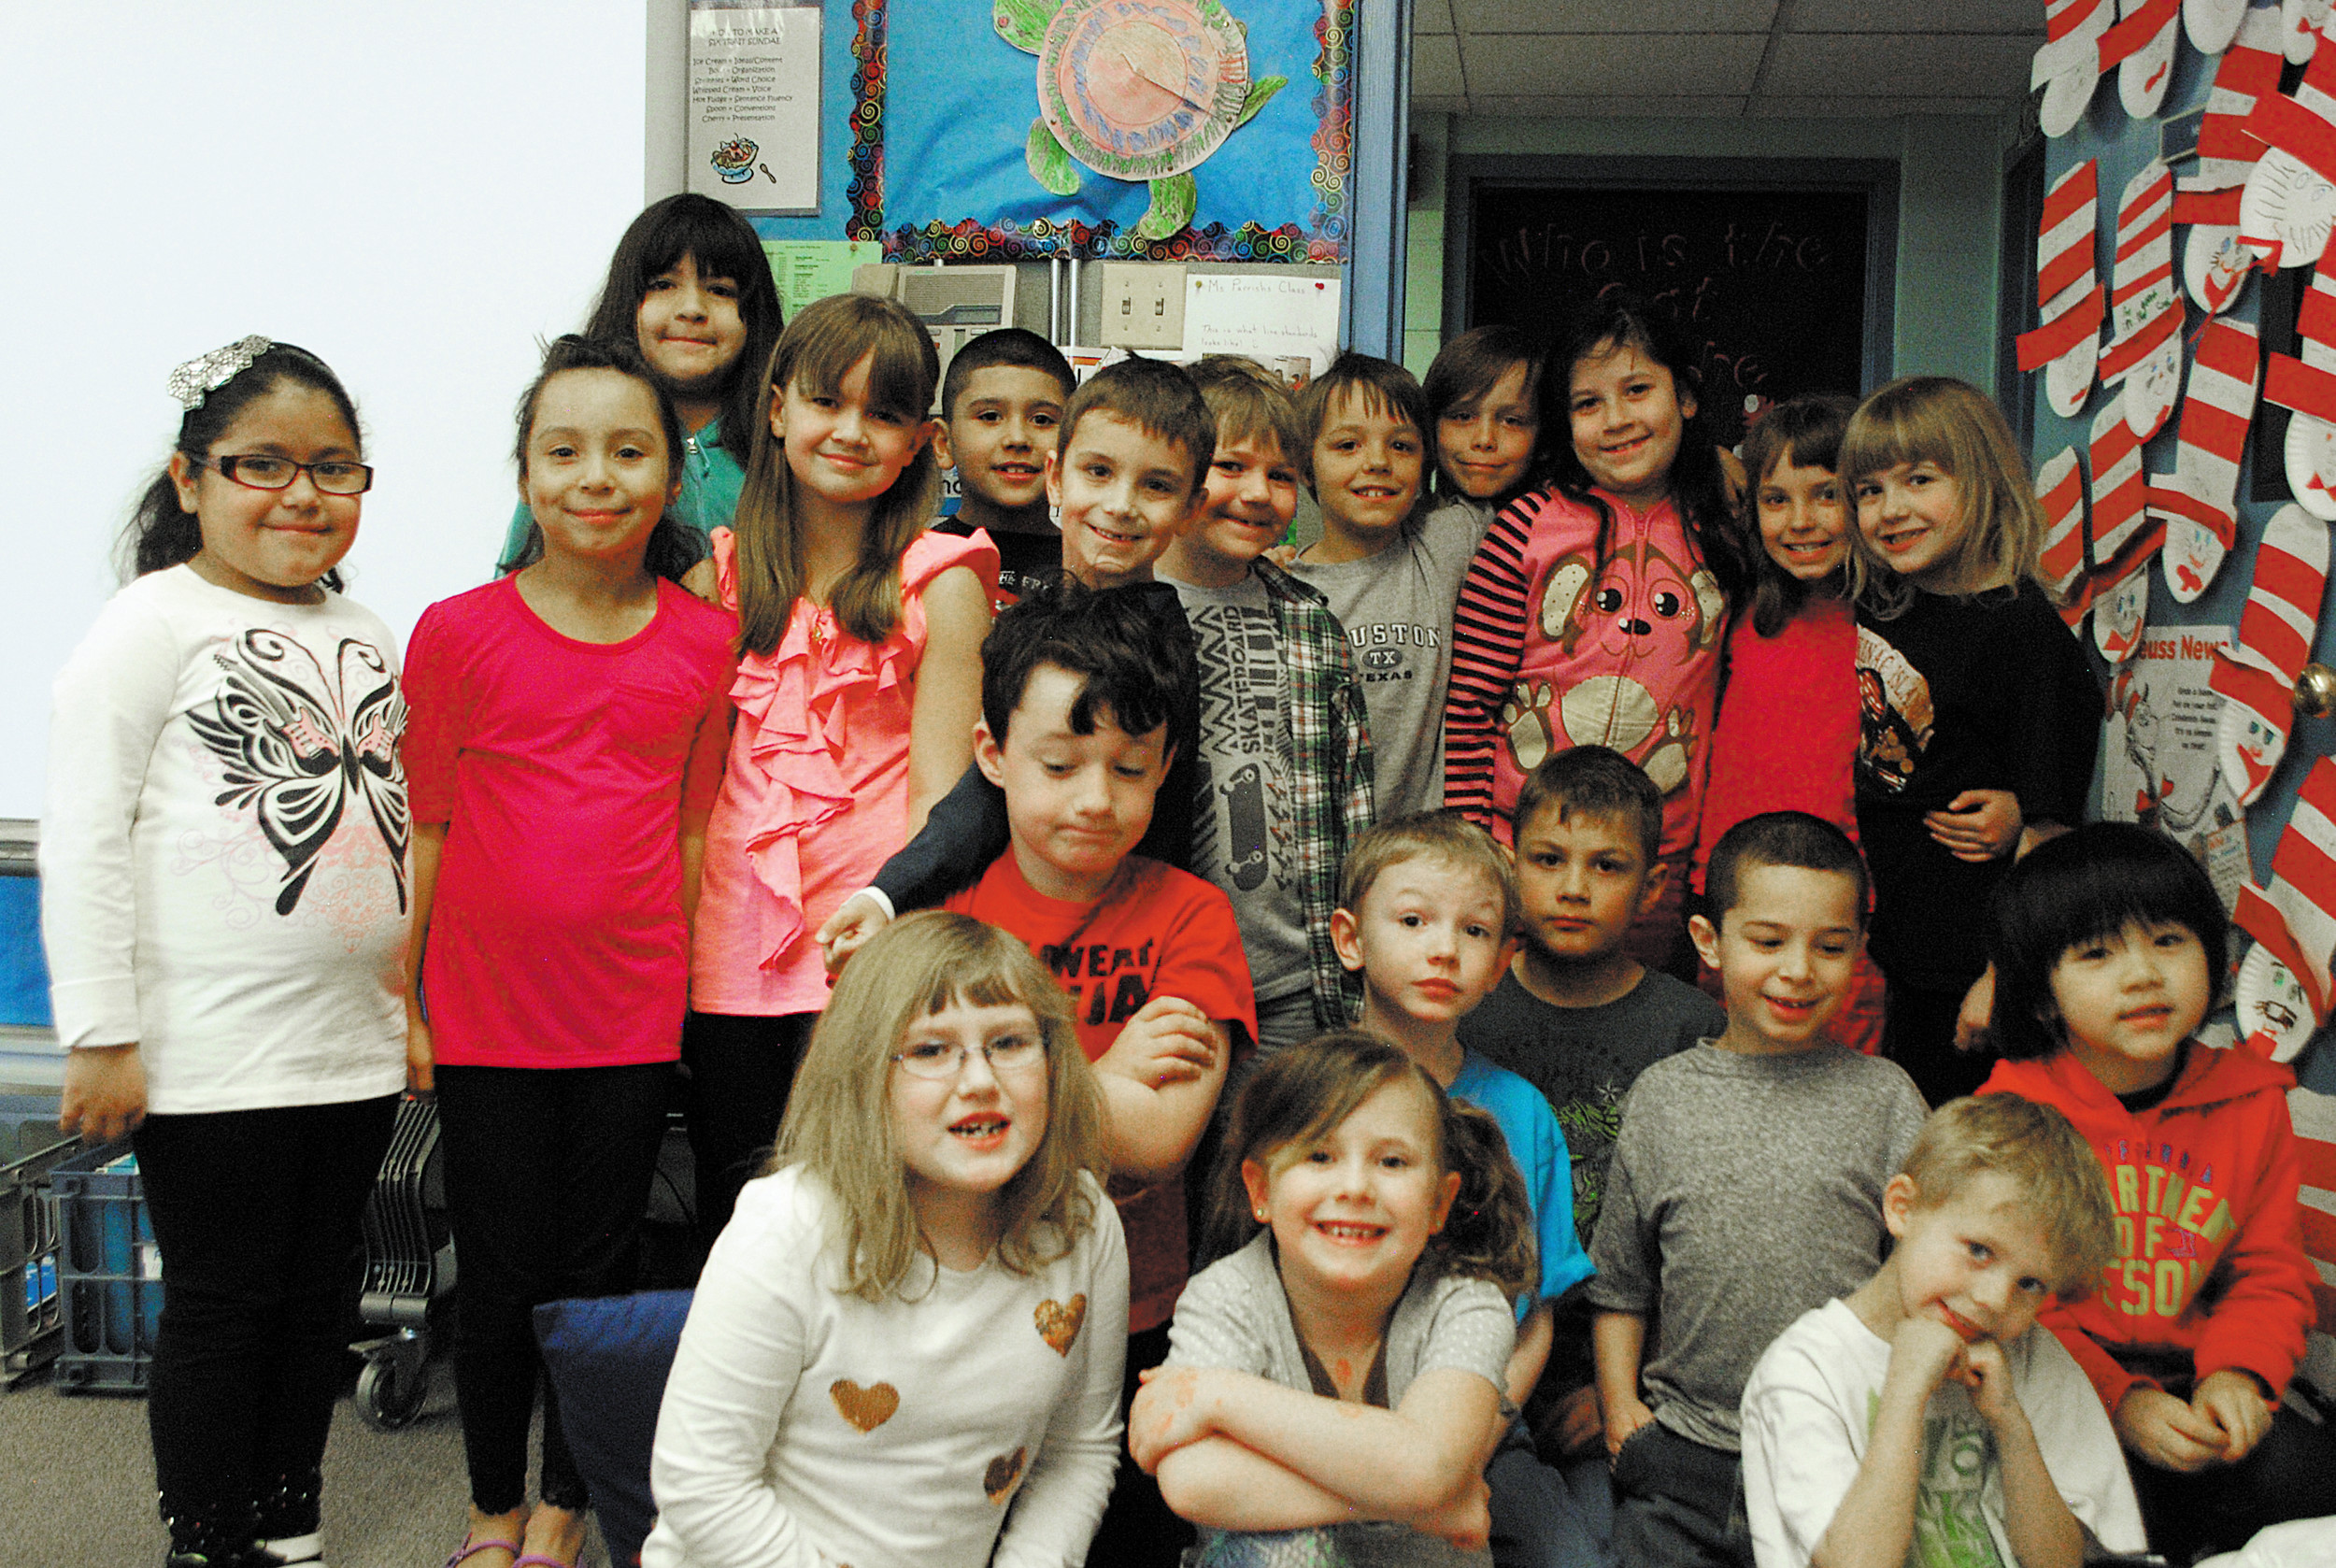 Mrs. Parrish's second-grade class at Pleasant View Elementary.